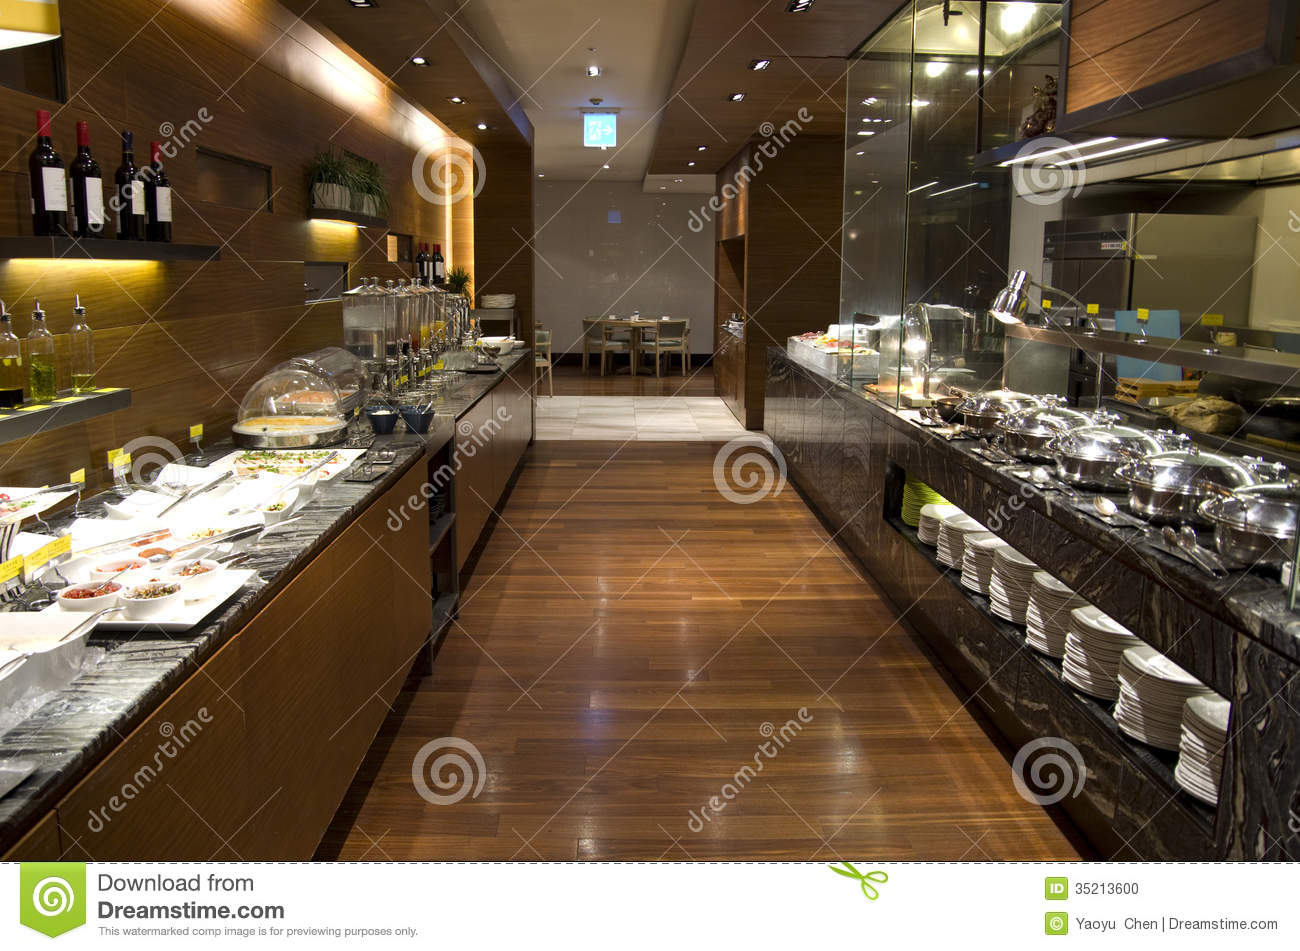 Buffet Cuisine Design Breakfast Buffet Restaurant Food In A Hotel Stock Photo